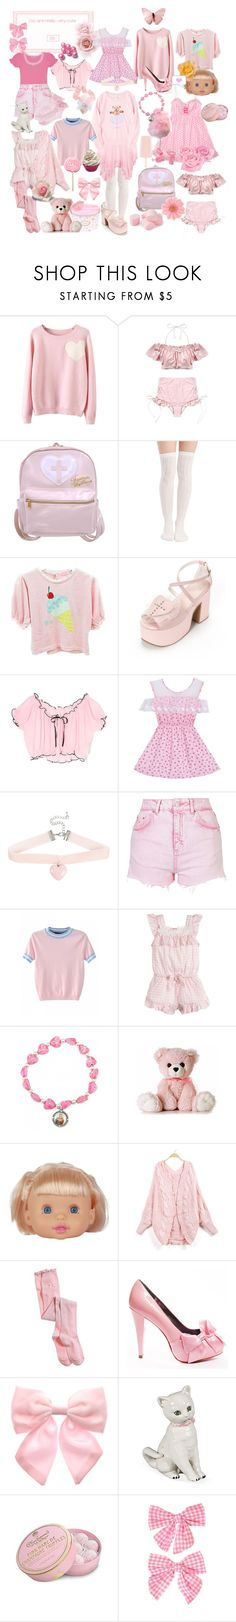 """""""bloody murder"""" by sucrosia ❤ liked on Polyvore featuring WithChic, Wet Seal, Cotton Candy, Hot Topic, Topshop, Pink Bears, Aerie, Paris Hilton, Vie Active and Pumpkin Patch"""